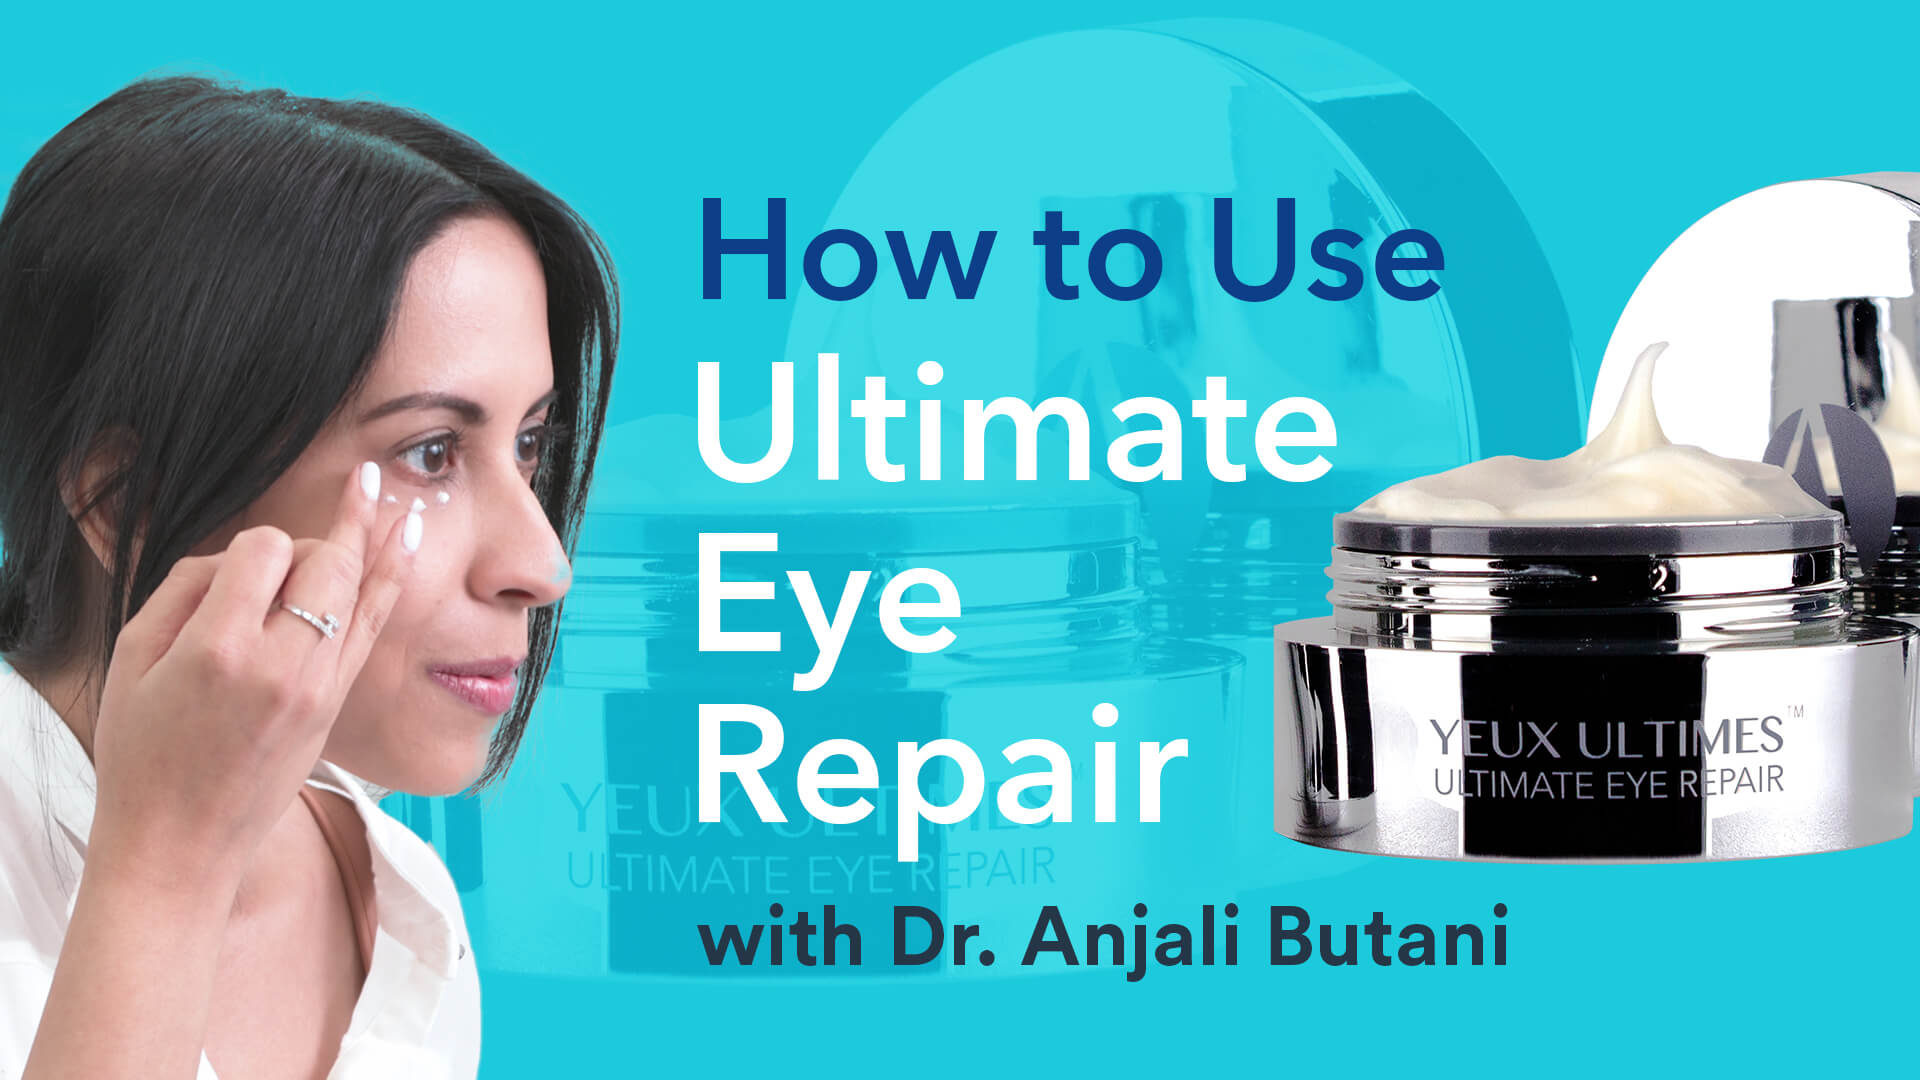 ULTIMATE EYE REPAIR How To Use Video